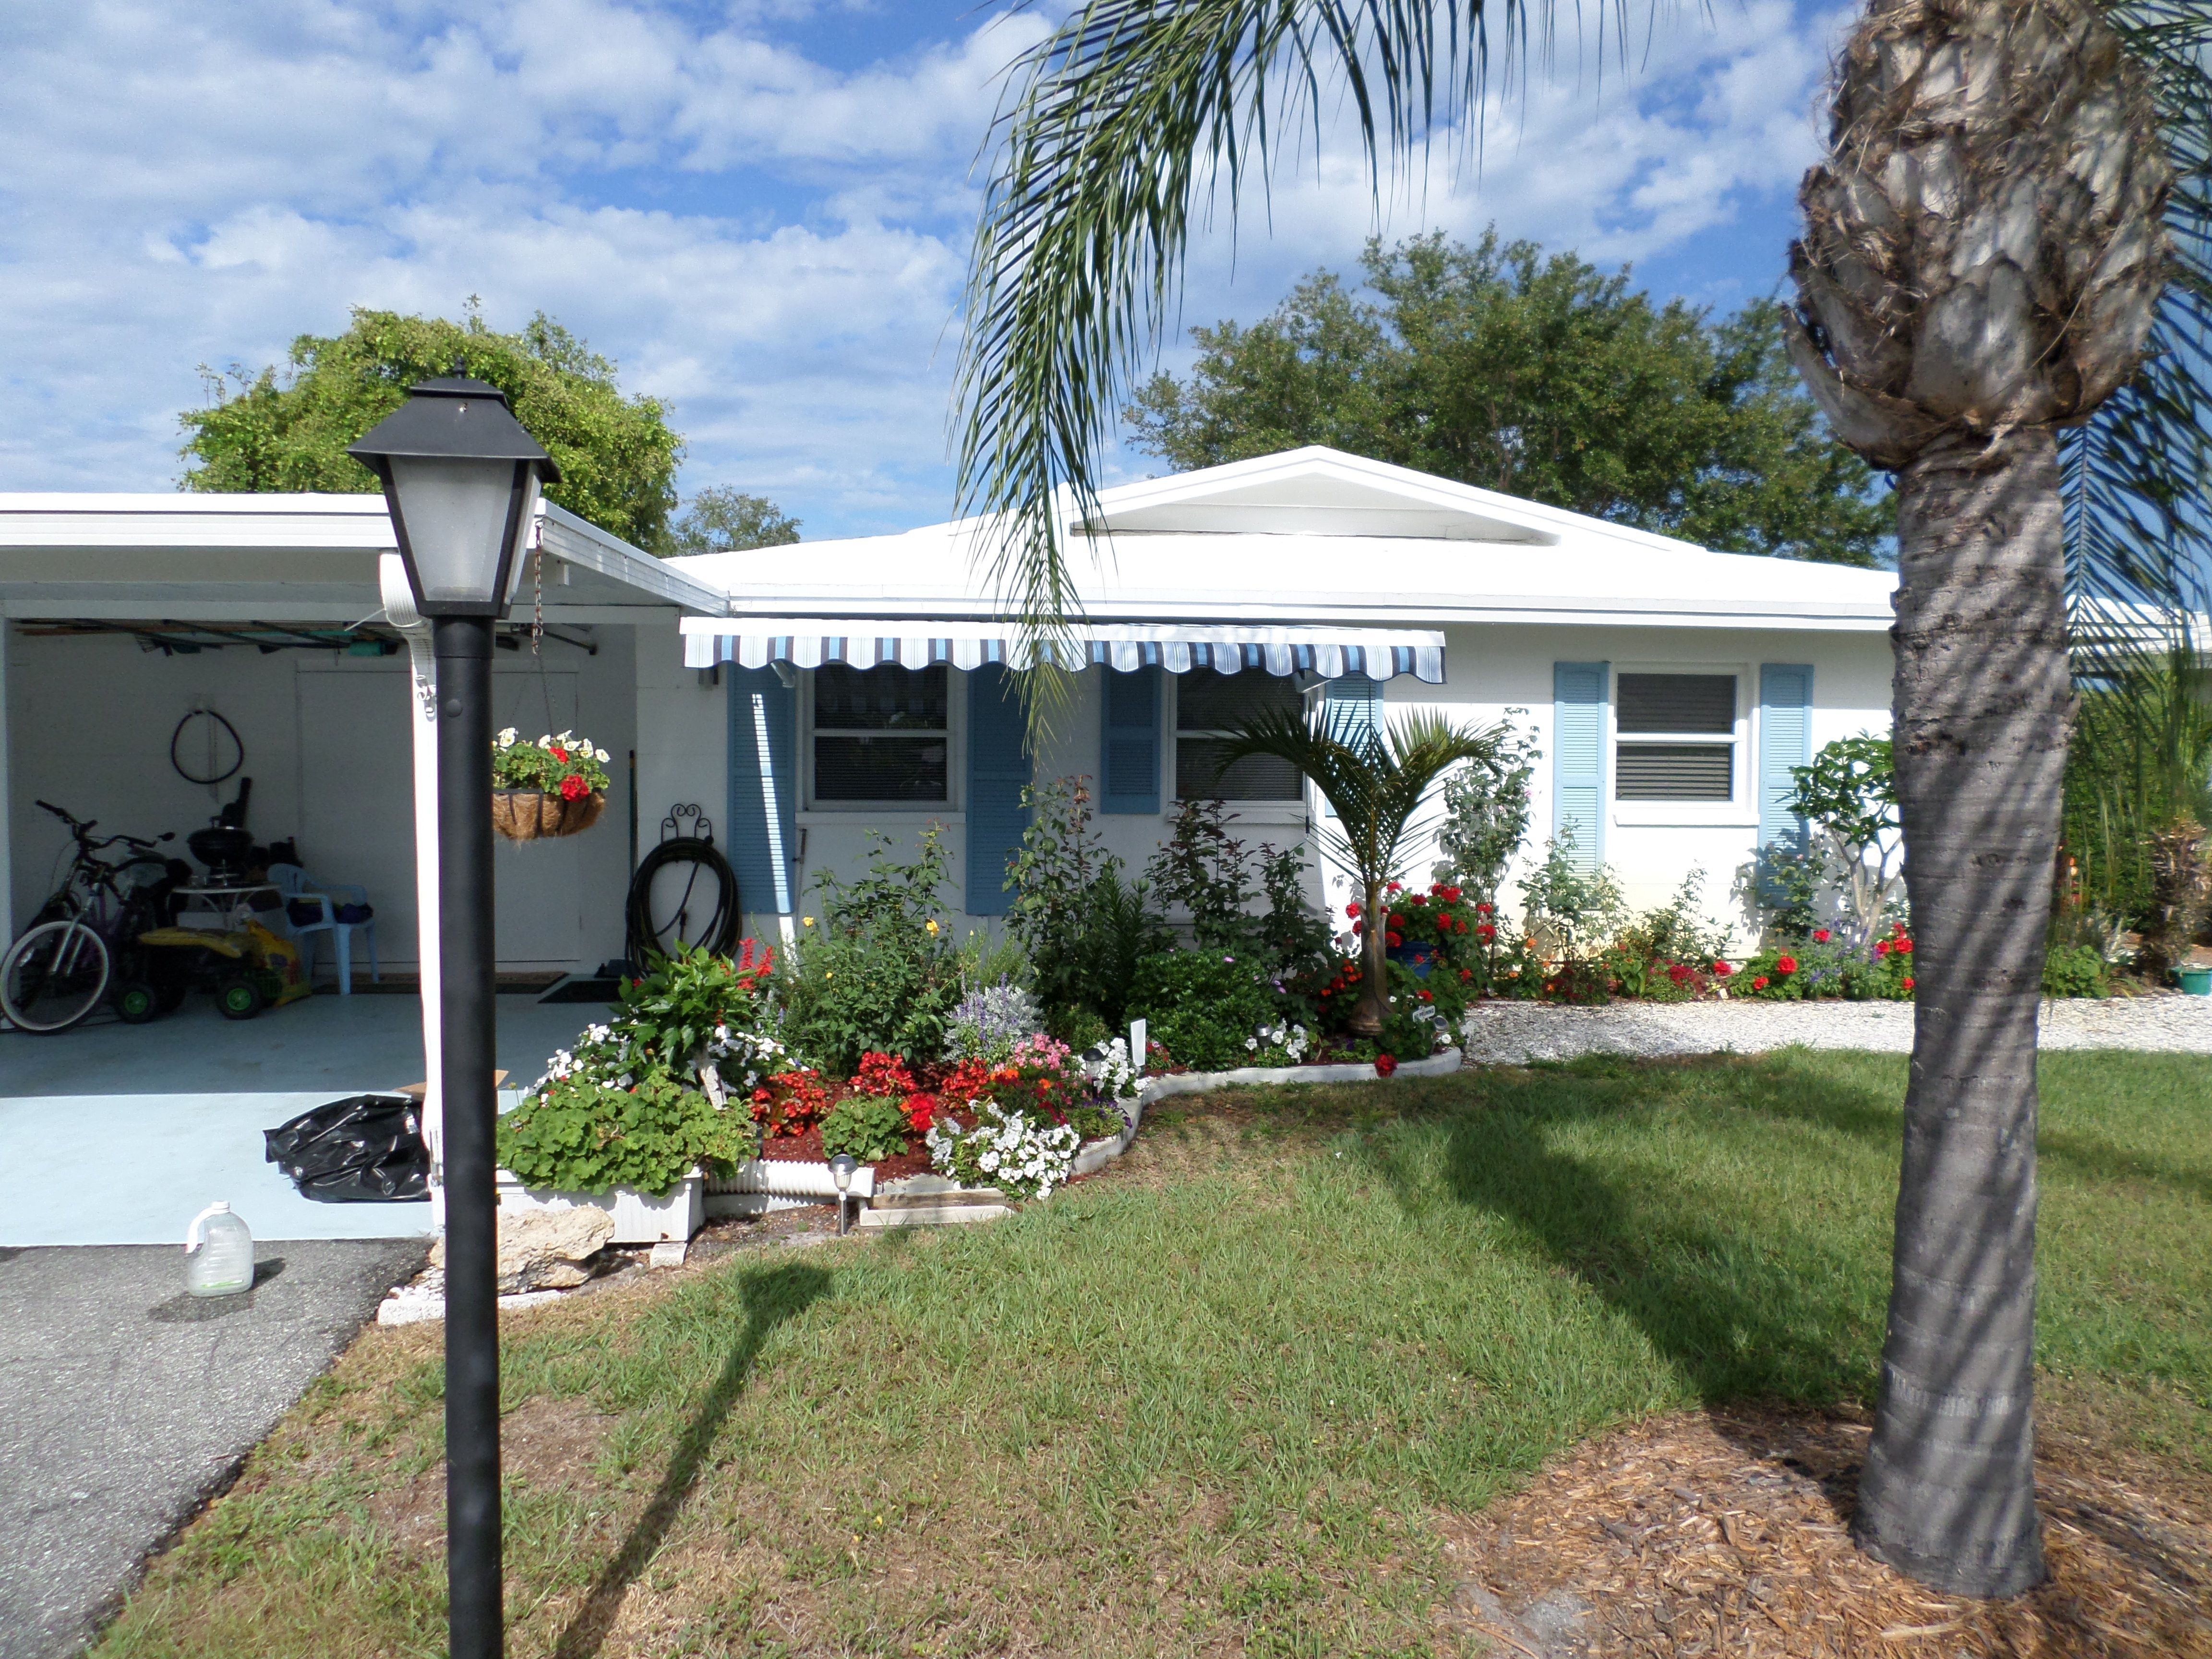 Shutters | Screens | Awnings for Hurricane | Security ...